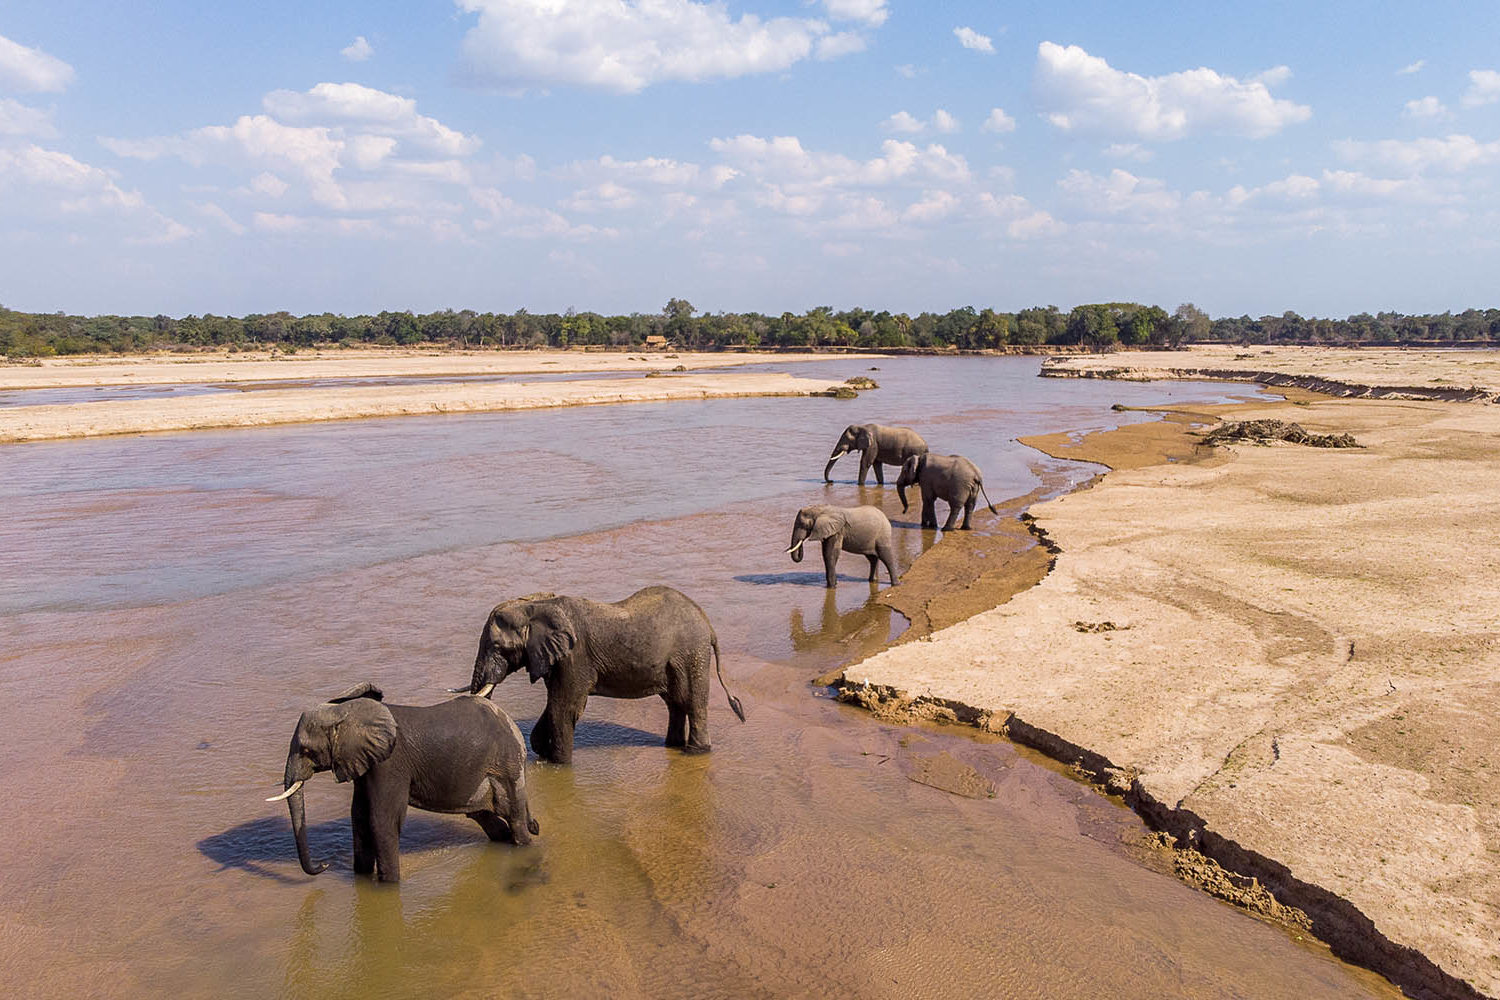 takwela-camp-north-luangwa-national-park-lodges-zambia-in-style-intimate-stay-mwaleshi-river-elephants